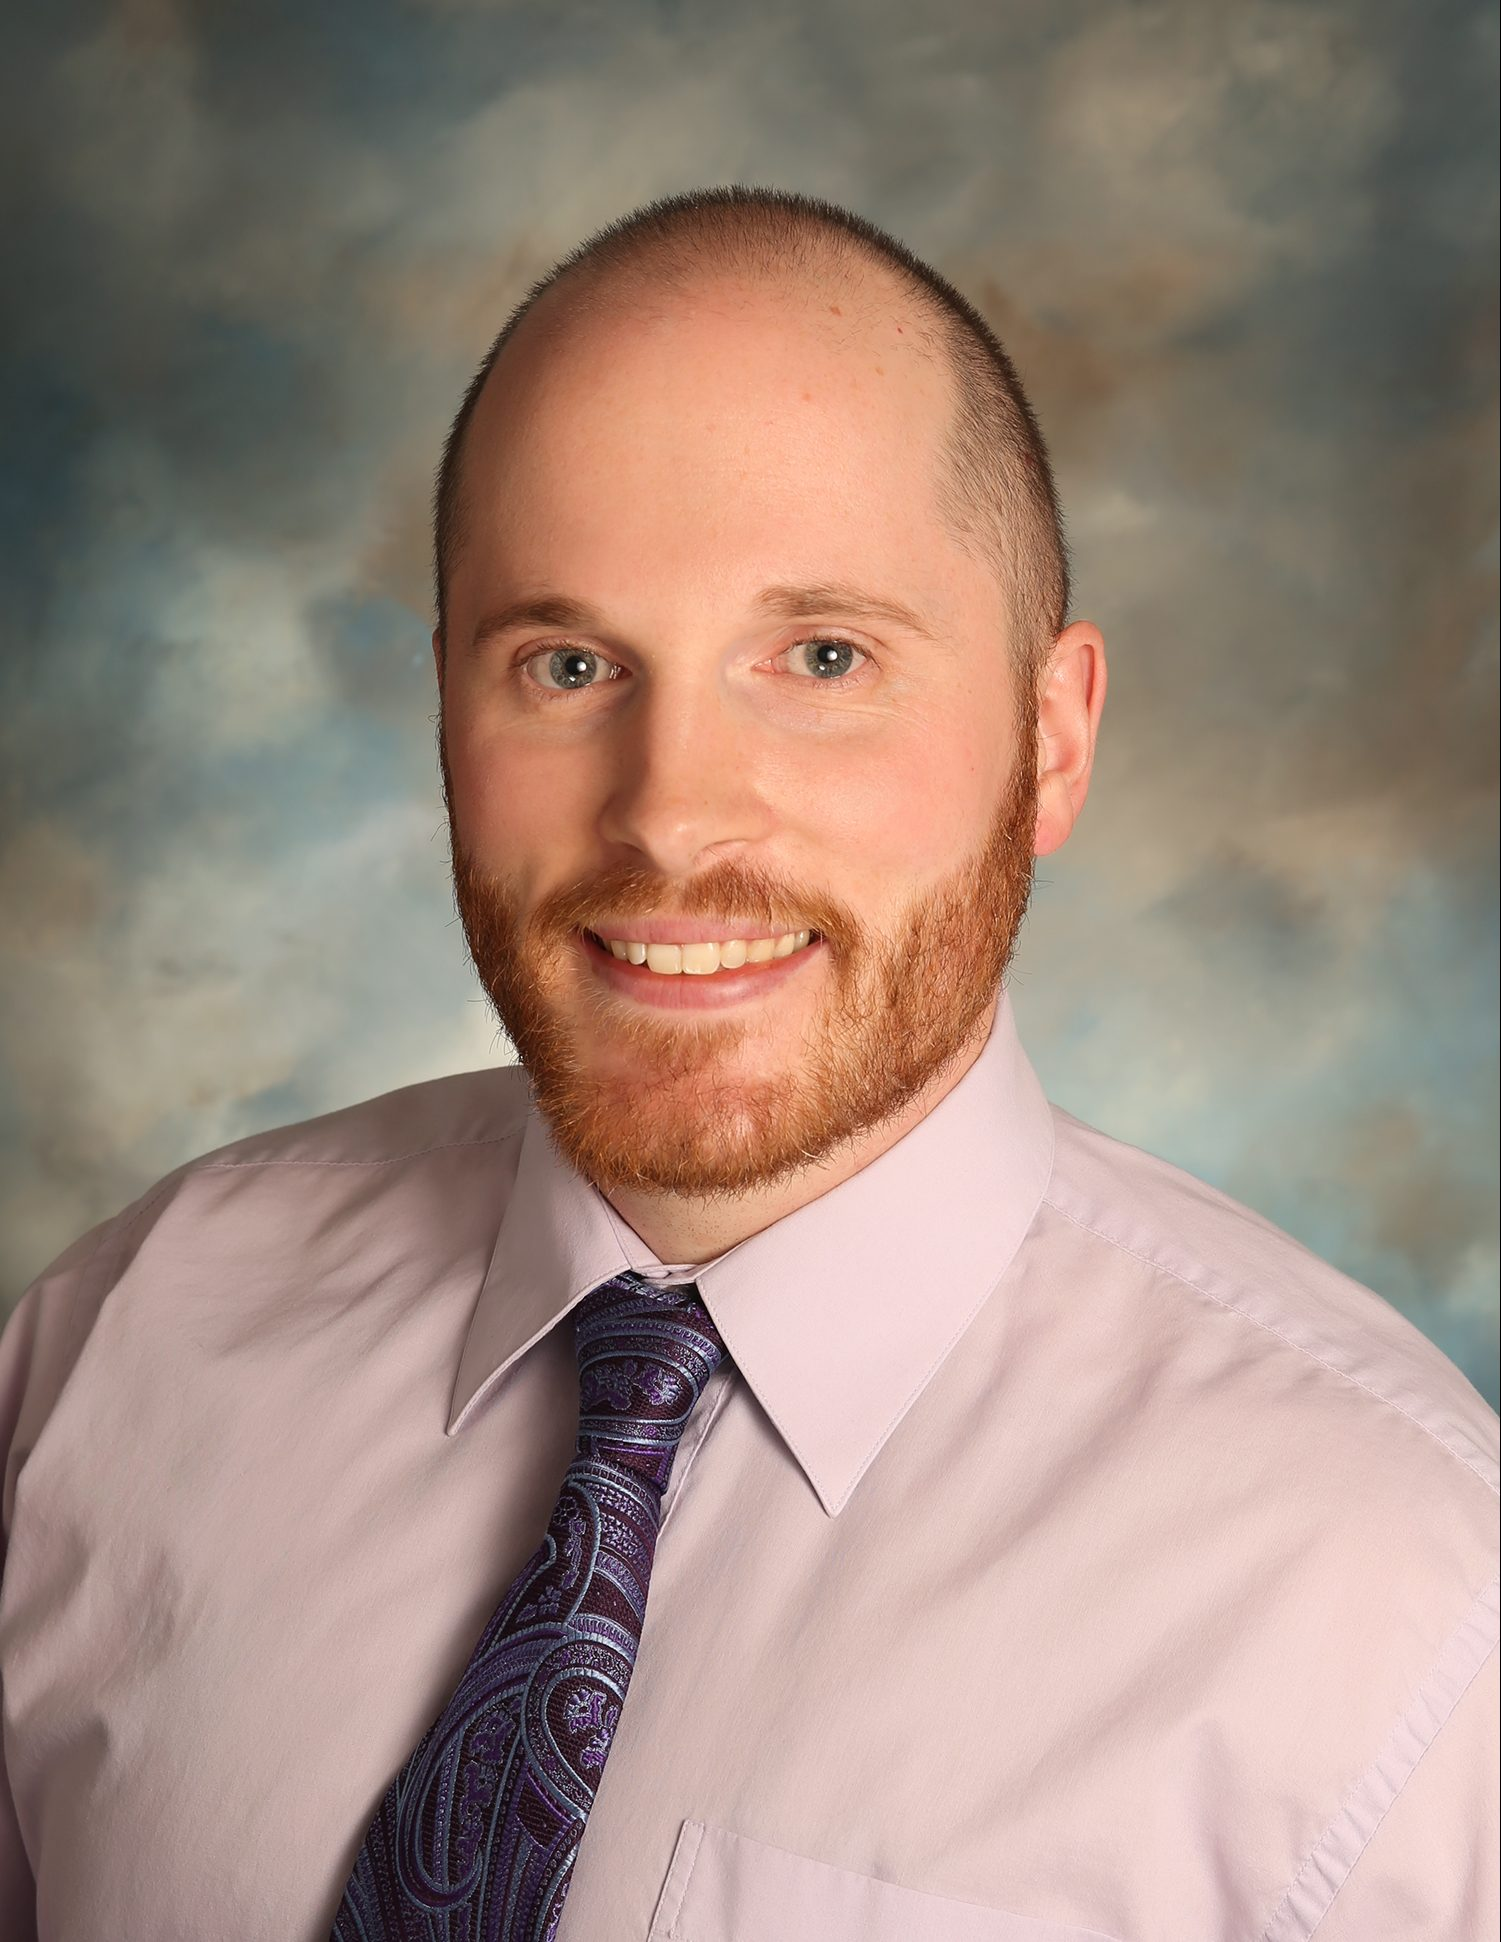 Scott Wray, PA-C, OTL - An Independent Provider of Memorial Healthcare